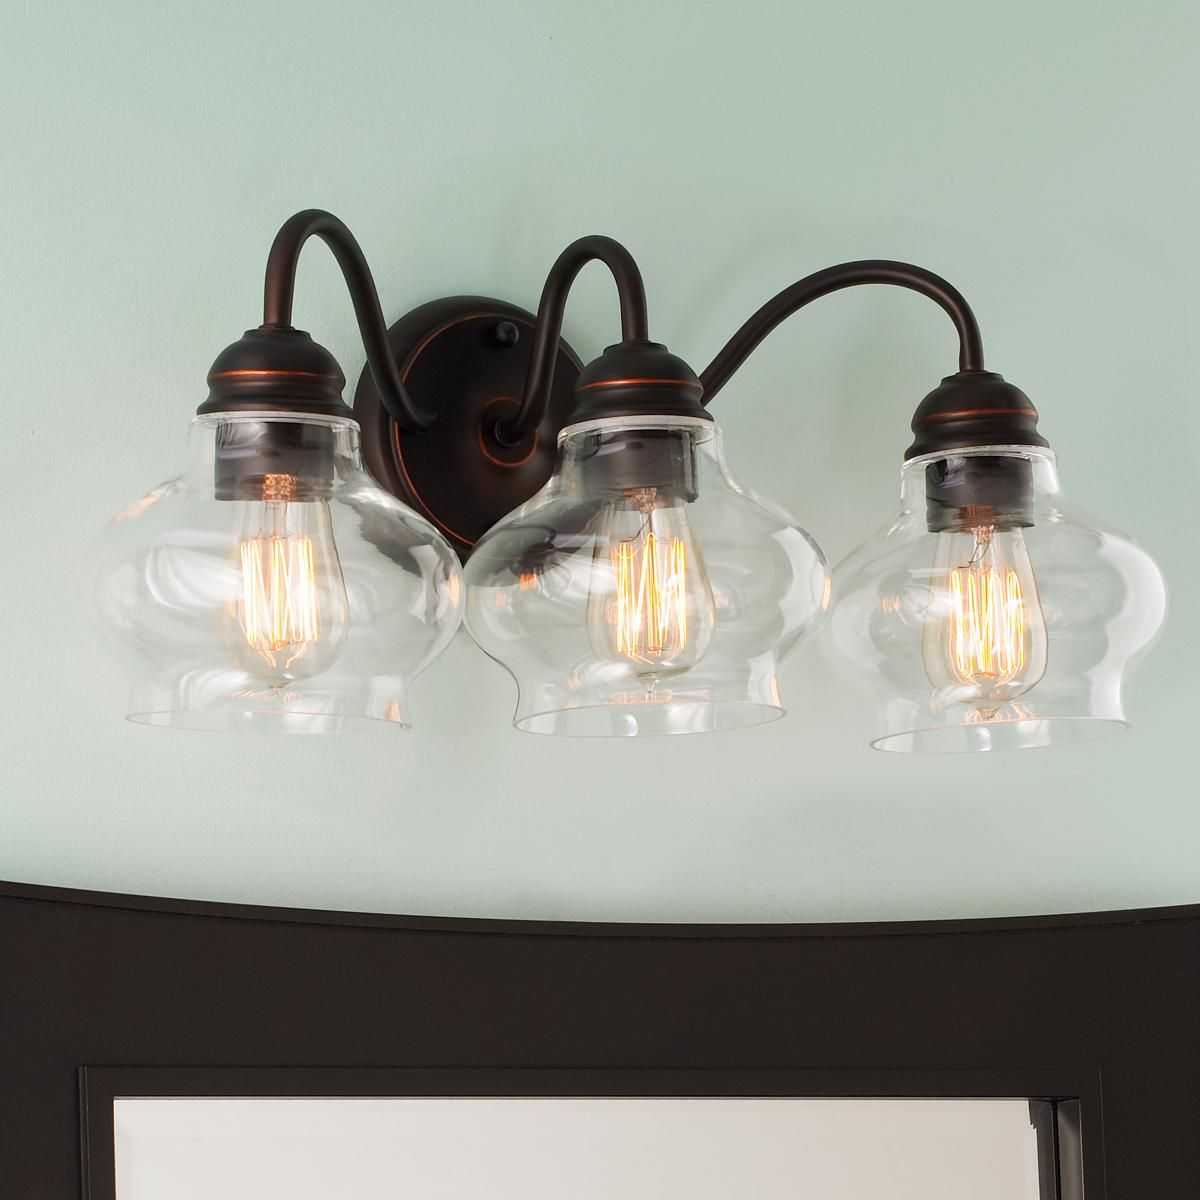 Double Glass Vanity Light : Double Bullet Glass Wall Sconce Glasses, Lights and Chang e 3